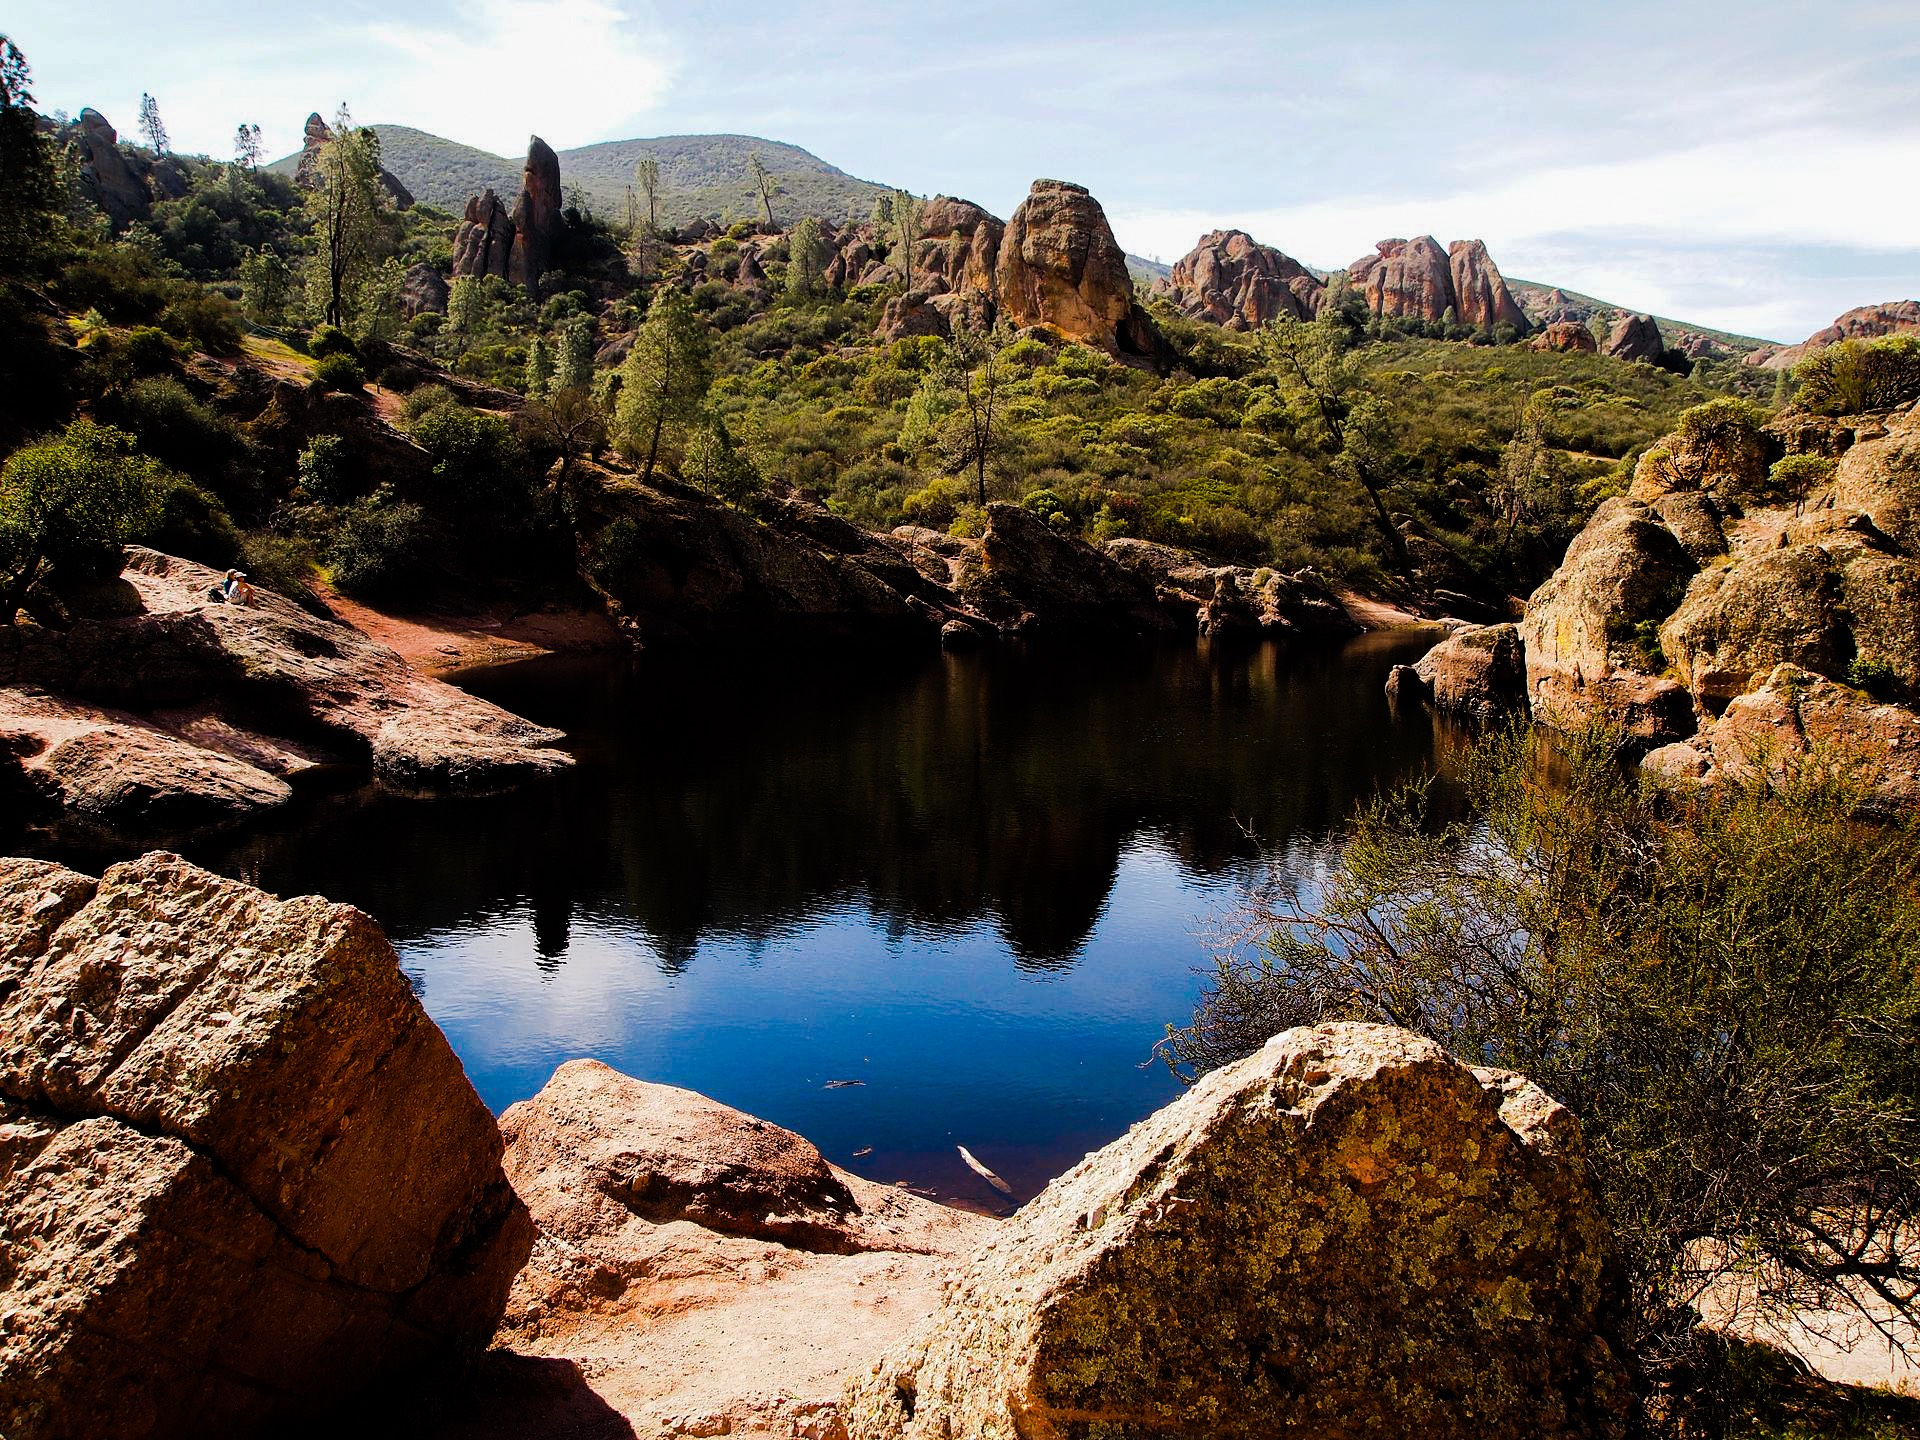 View of Bear Gulch In Pinnacles National Park. Photo by: Inklein